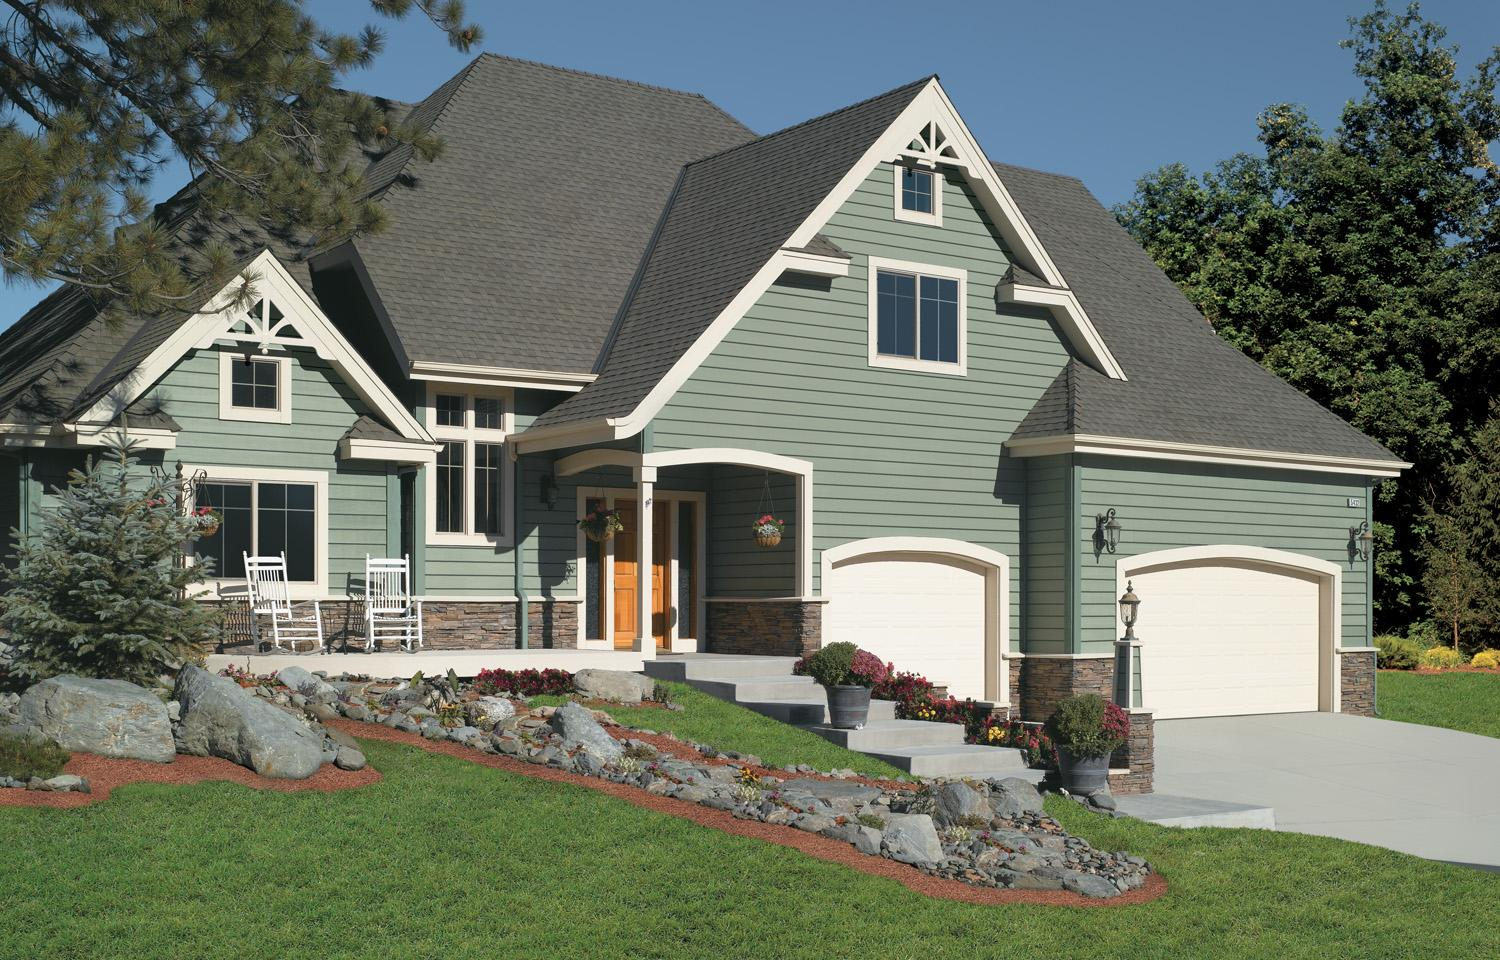 4 Types of Fiber Cement Siding for Your Home (Pros and Cons)